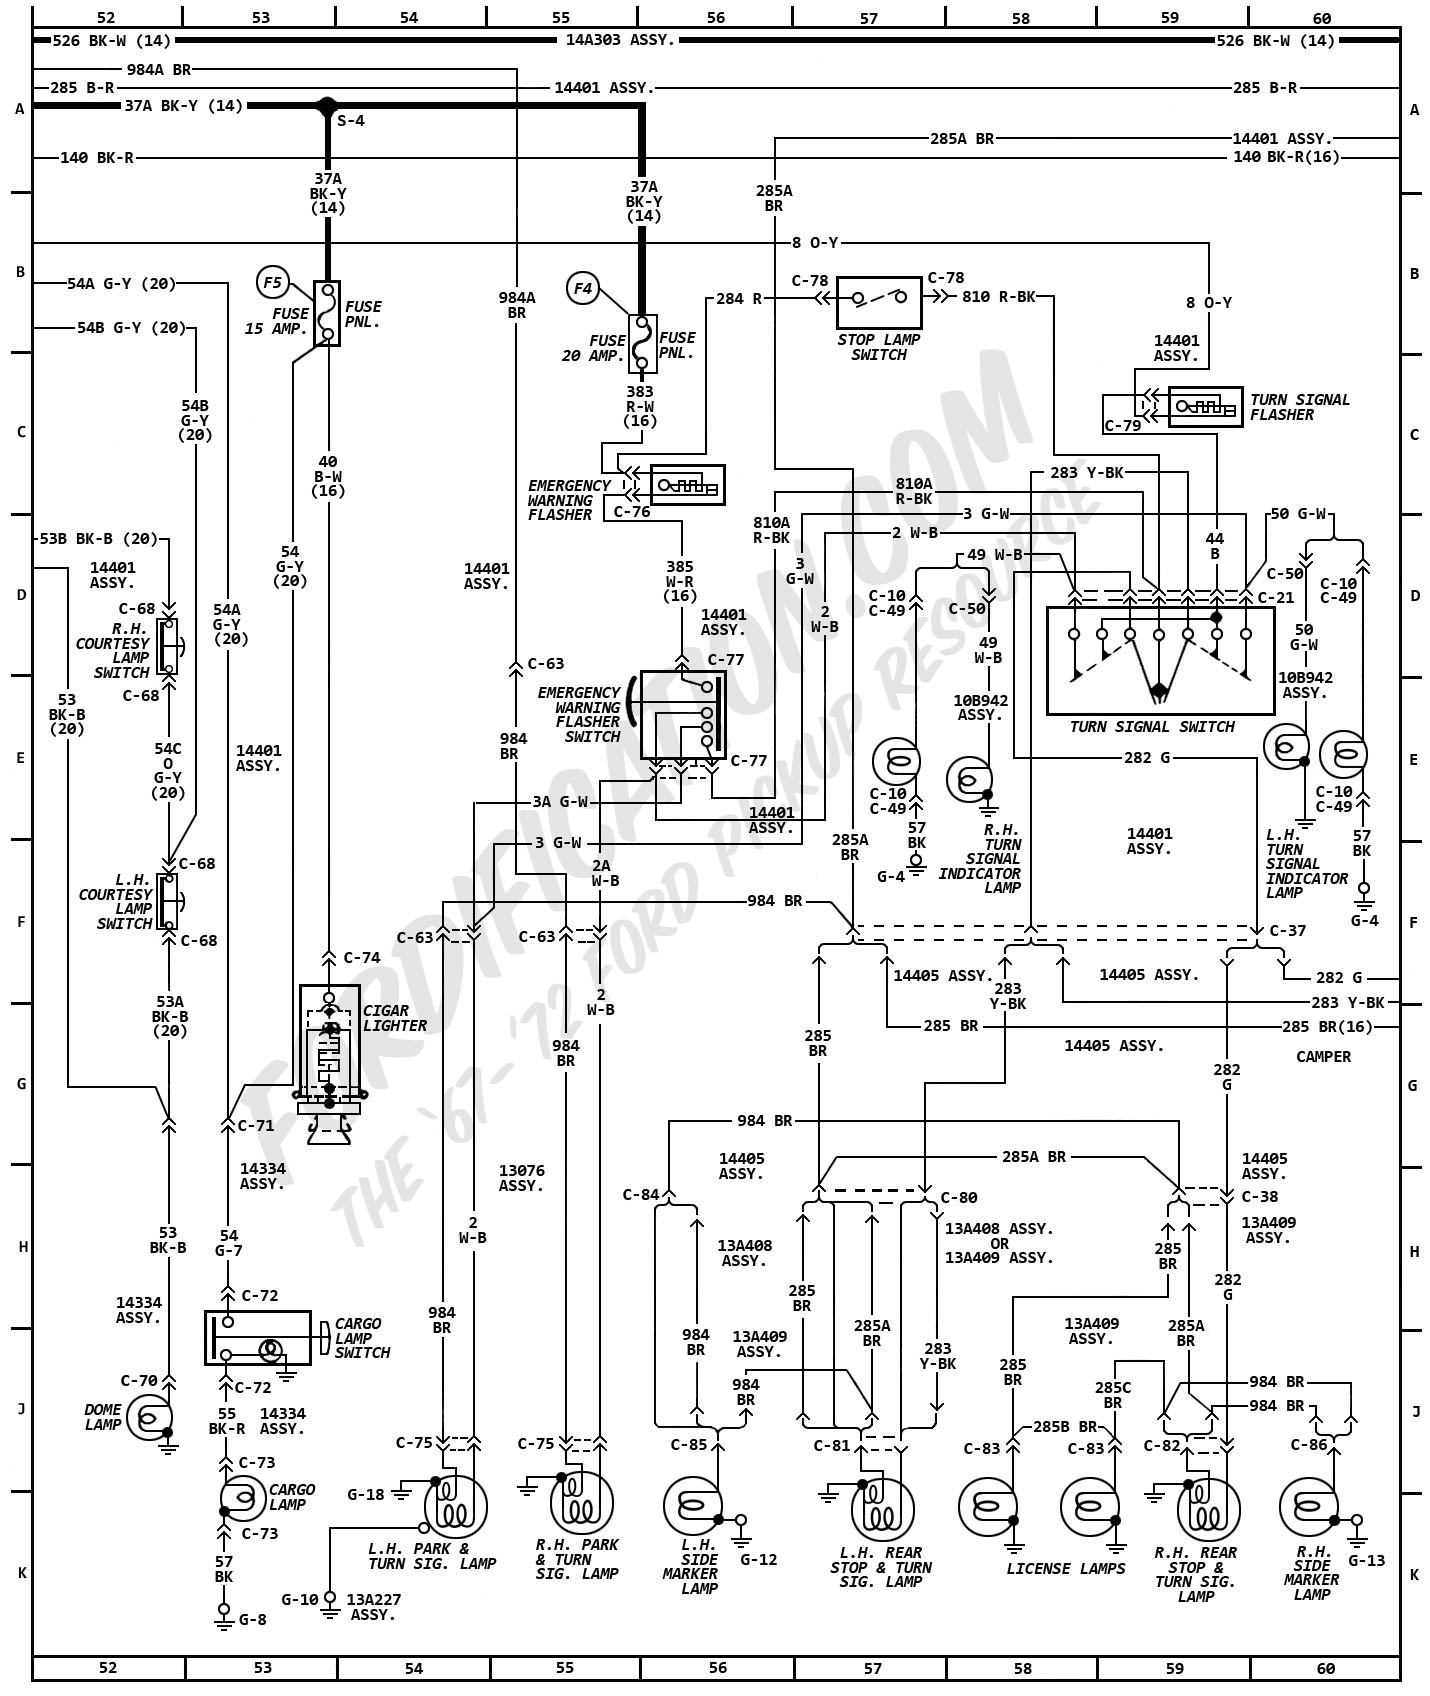 1972MasterWiring_06 1972 ford truck wiring diagrams fordification com 1970 ford f100 turn signal wiring diagram at mifinder.co